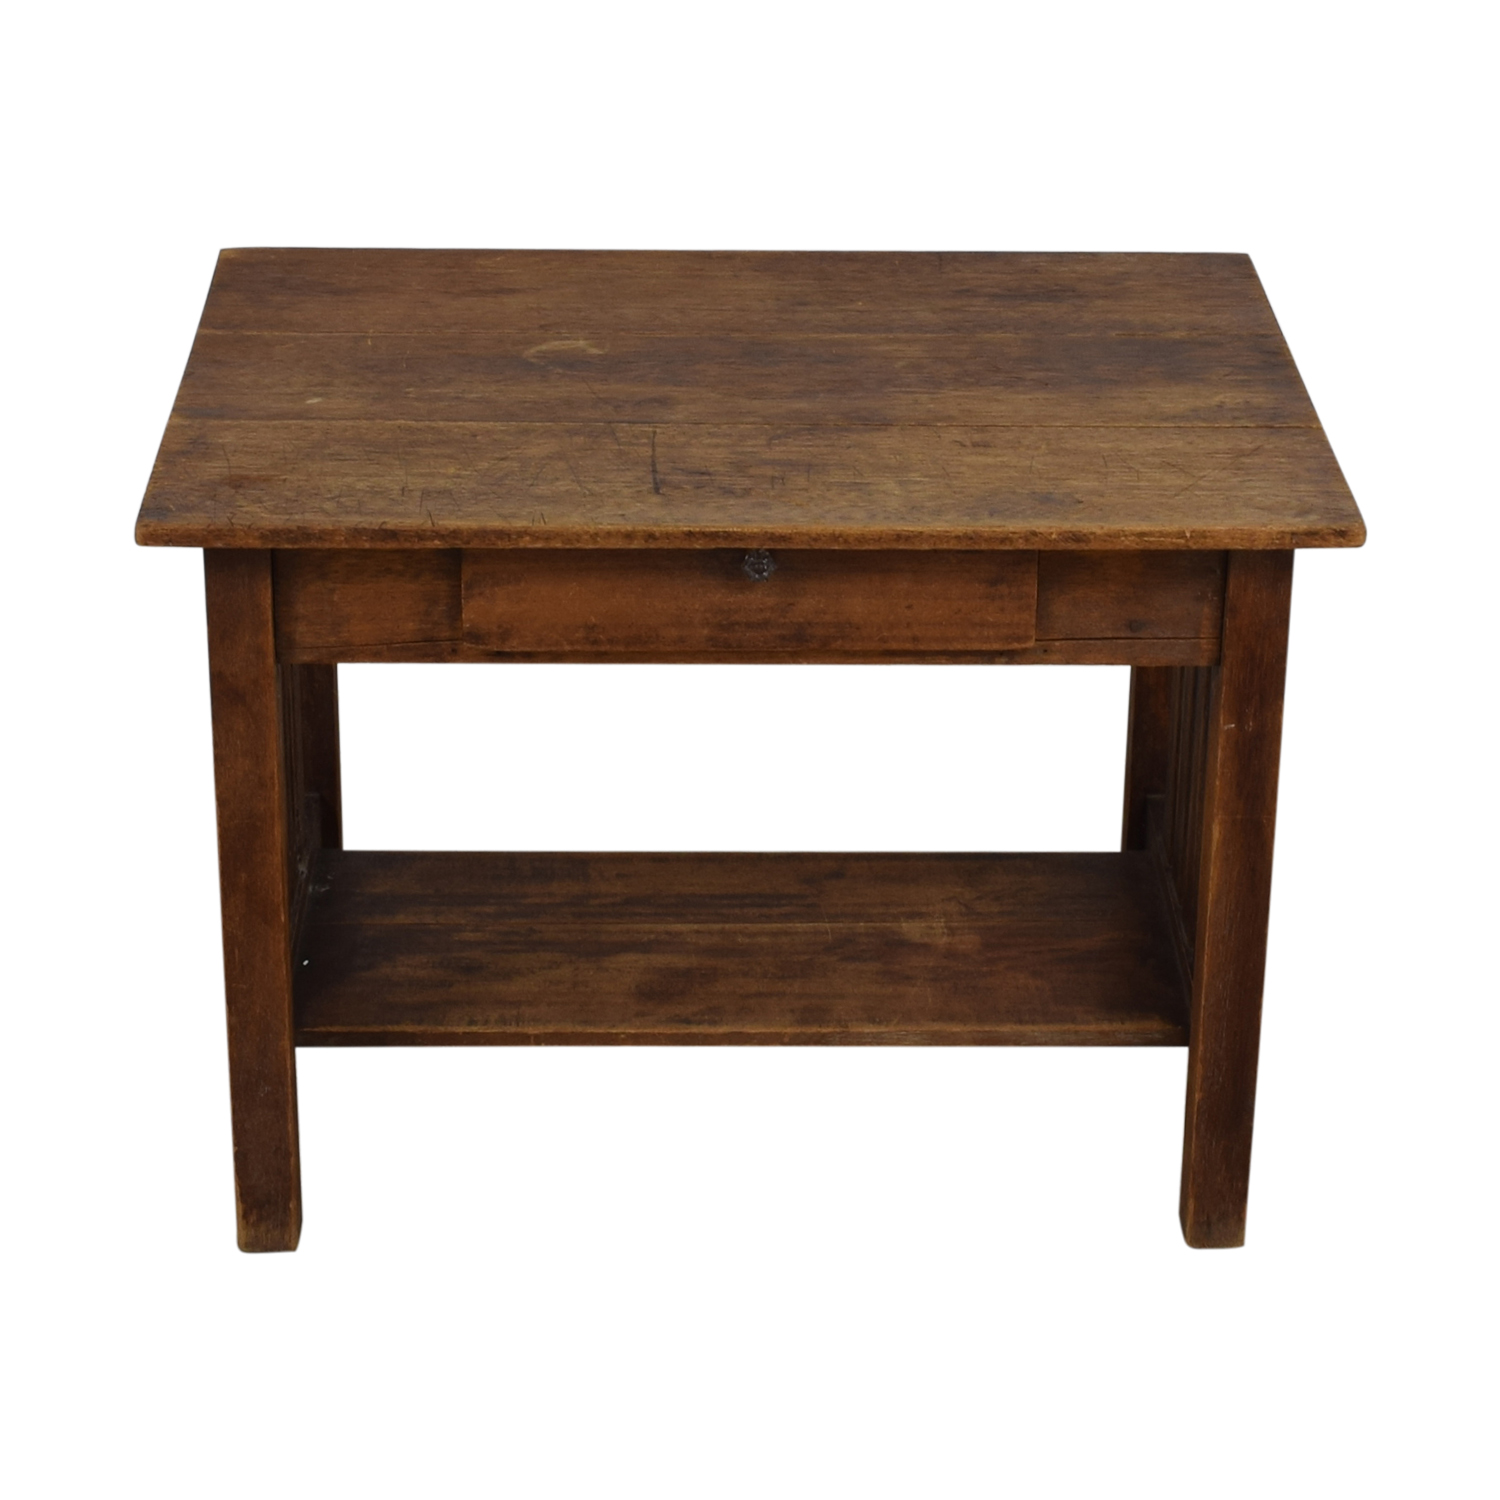 82 Off Mission Style Single Drawer Desk Tables